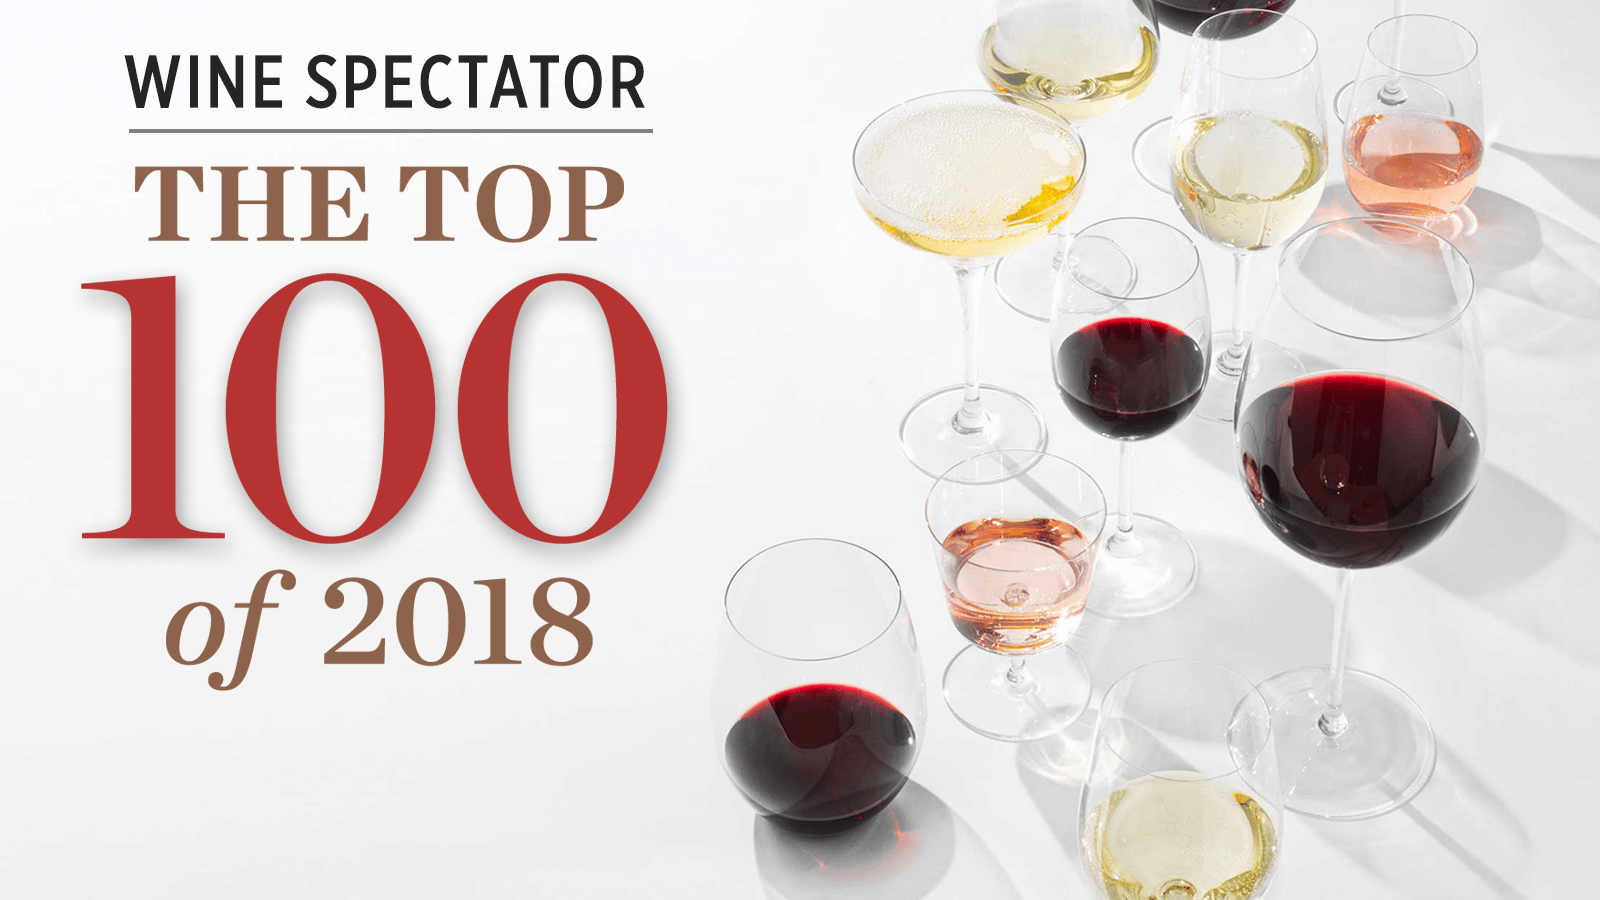 The Top 100 Wines of 2018